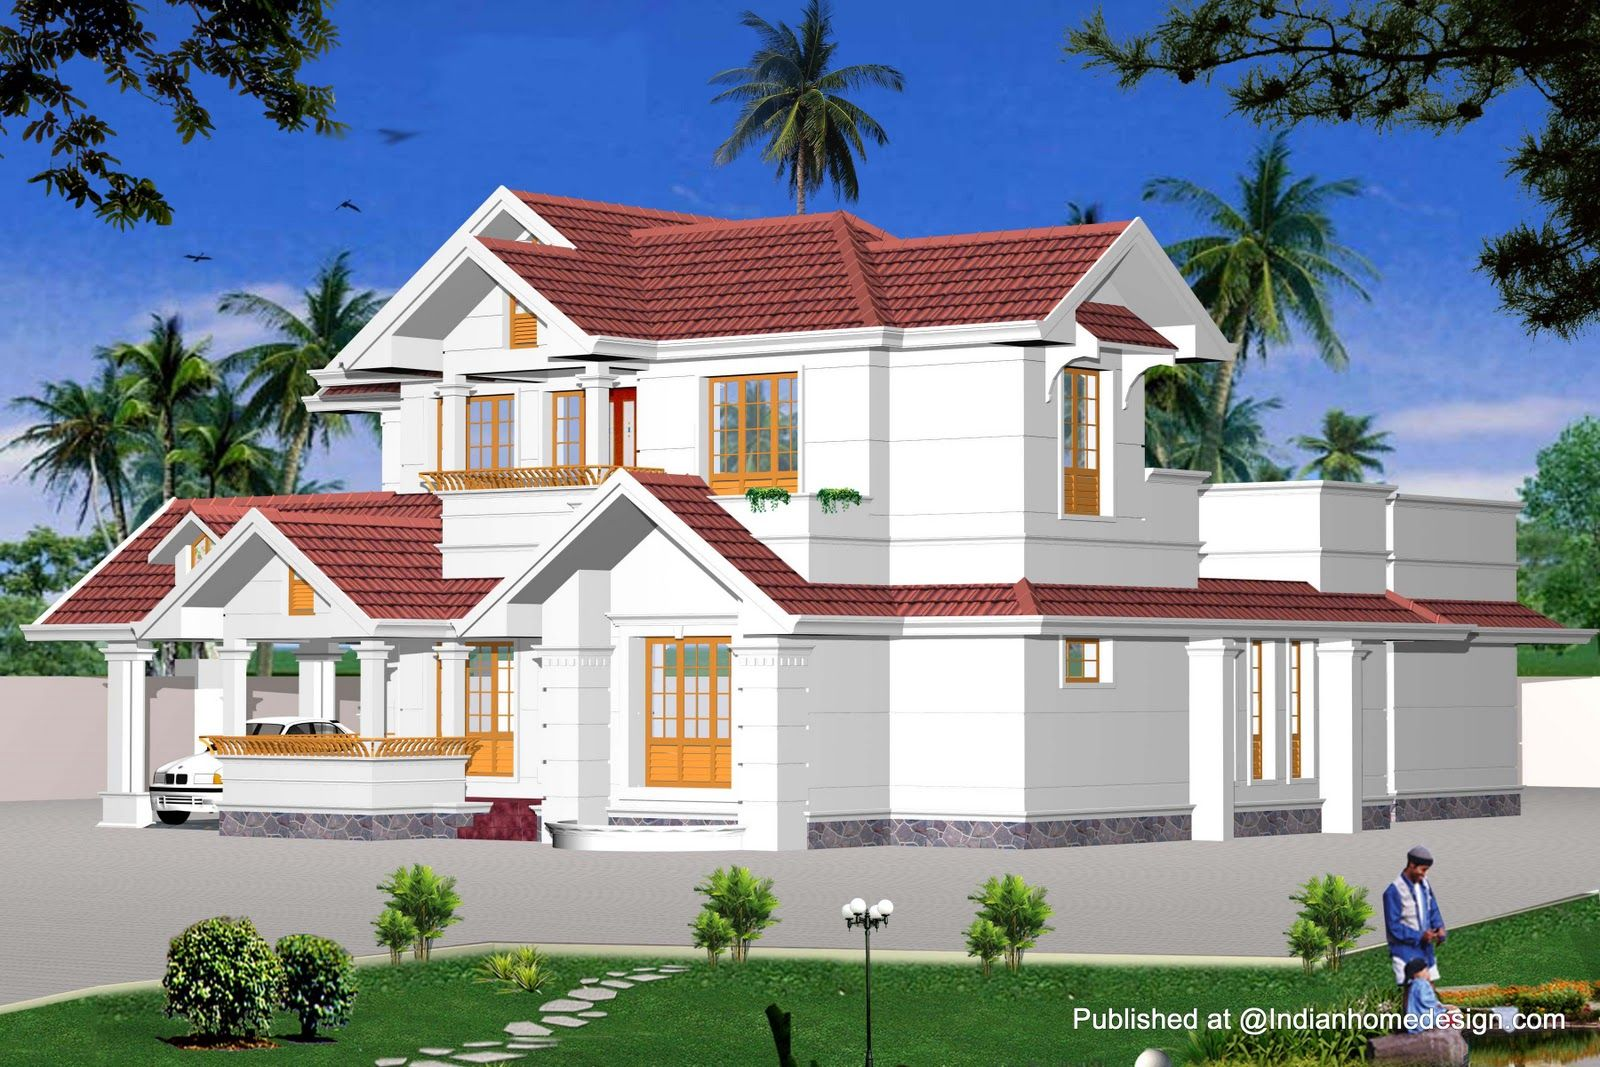 Strange 17 Best Images About Beautiful Indian Home Designs On Pinterest Largest Home Design Picture Inspirations Pitcheantrous